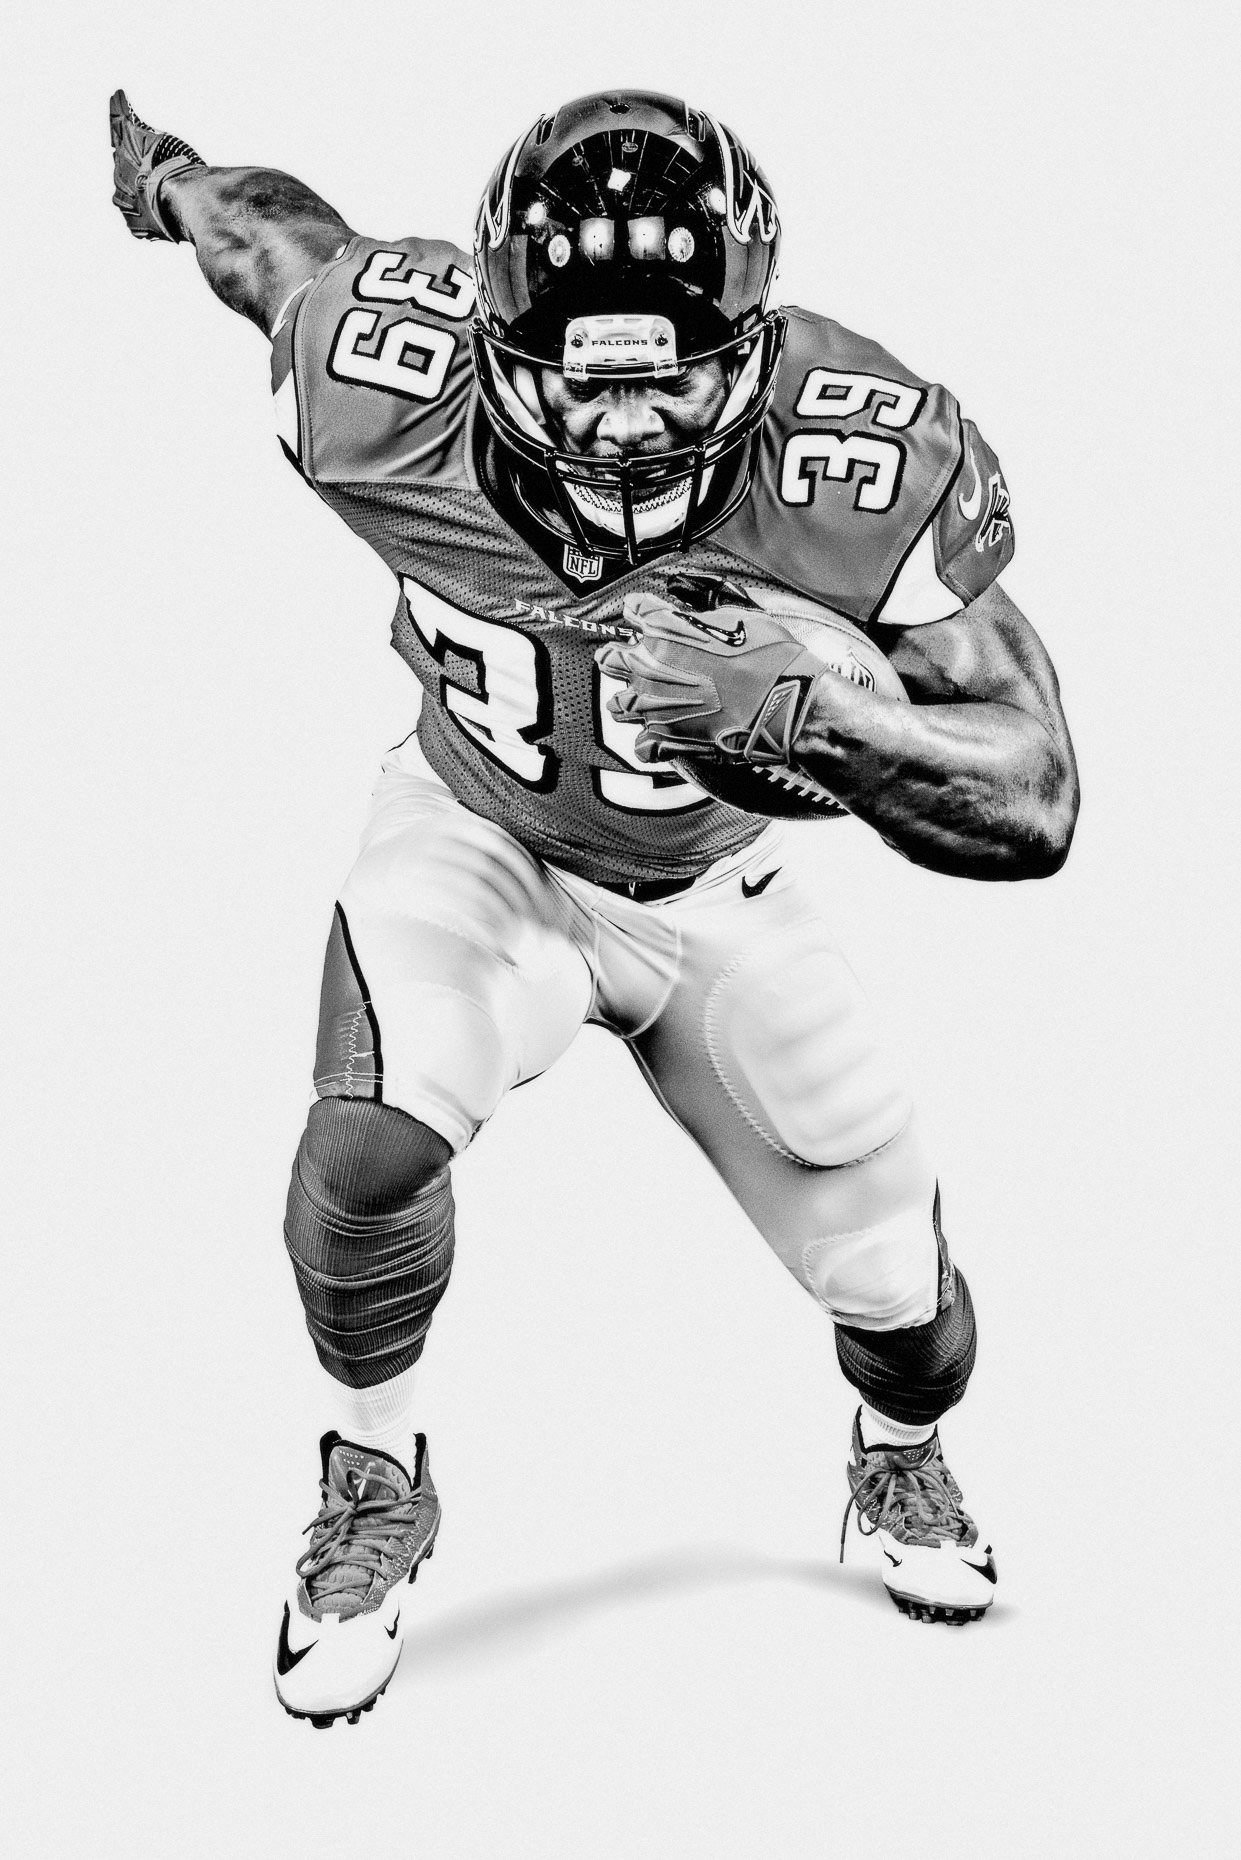 NFL Verizon Steven Jackson Atlanta Falcons running with football in a white studio b&w by Andy Batt